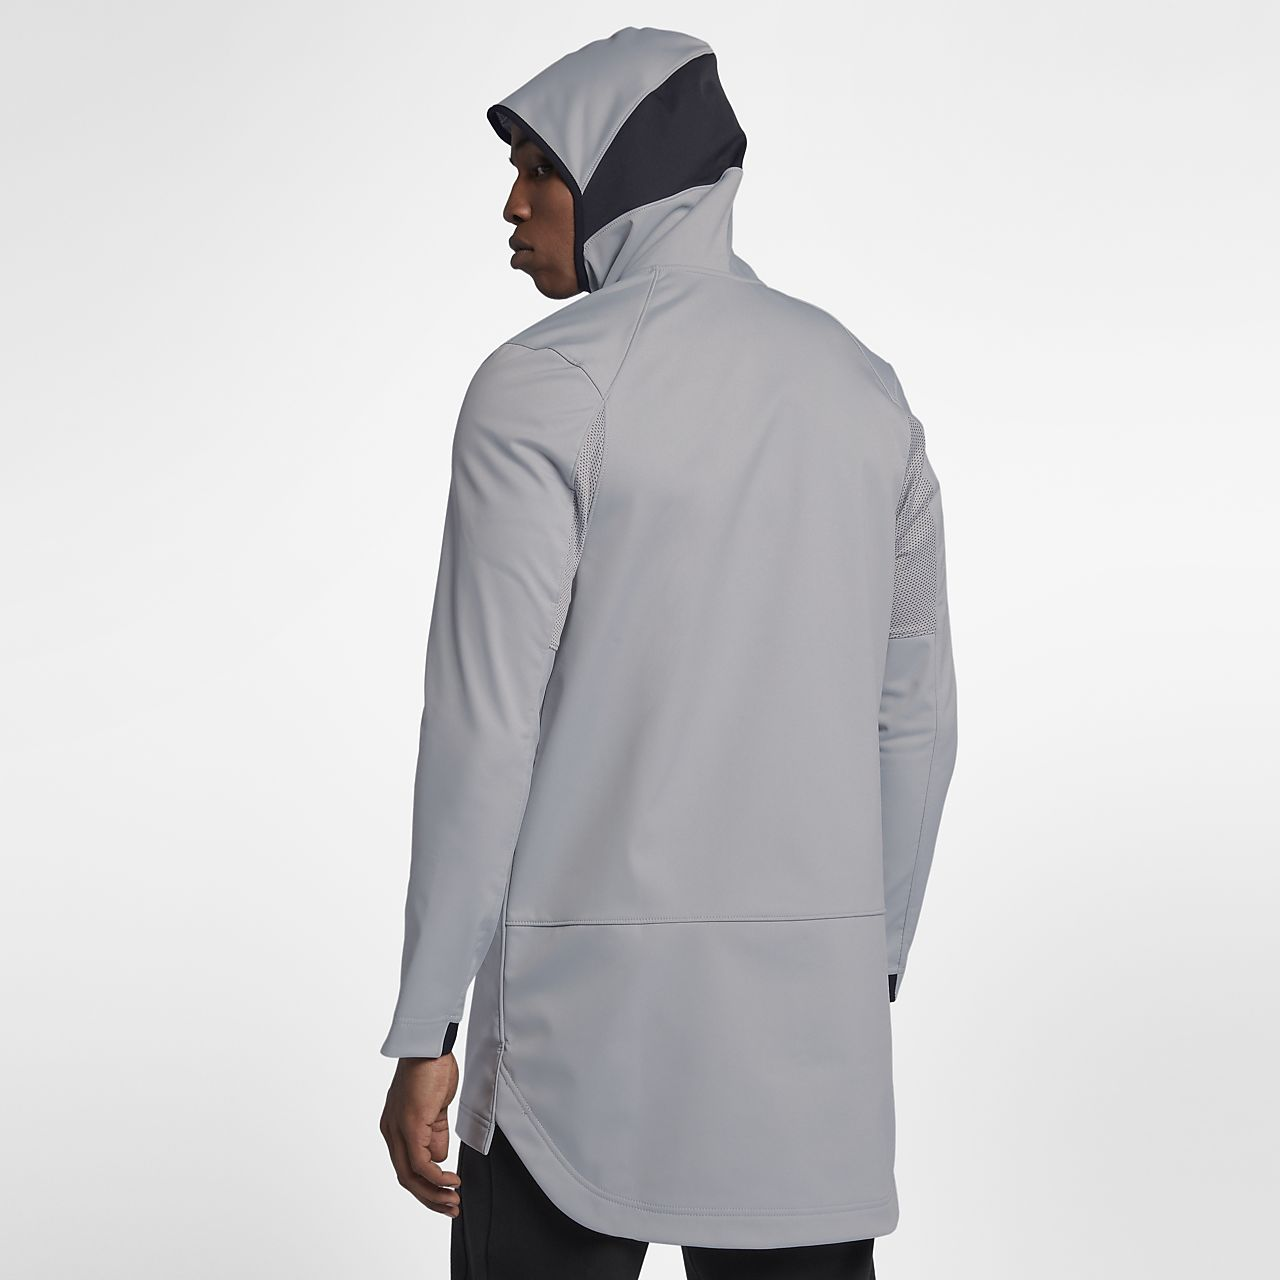 136009d4f0aa Low Resolution Nike Protect Men s Basketball Jacket Nike Protect Men s  Basketball Jacket